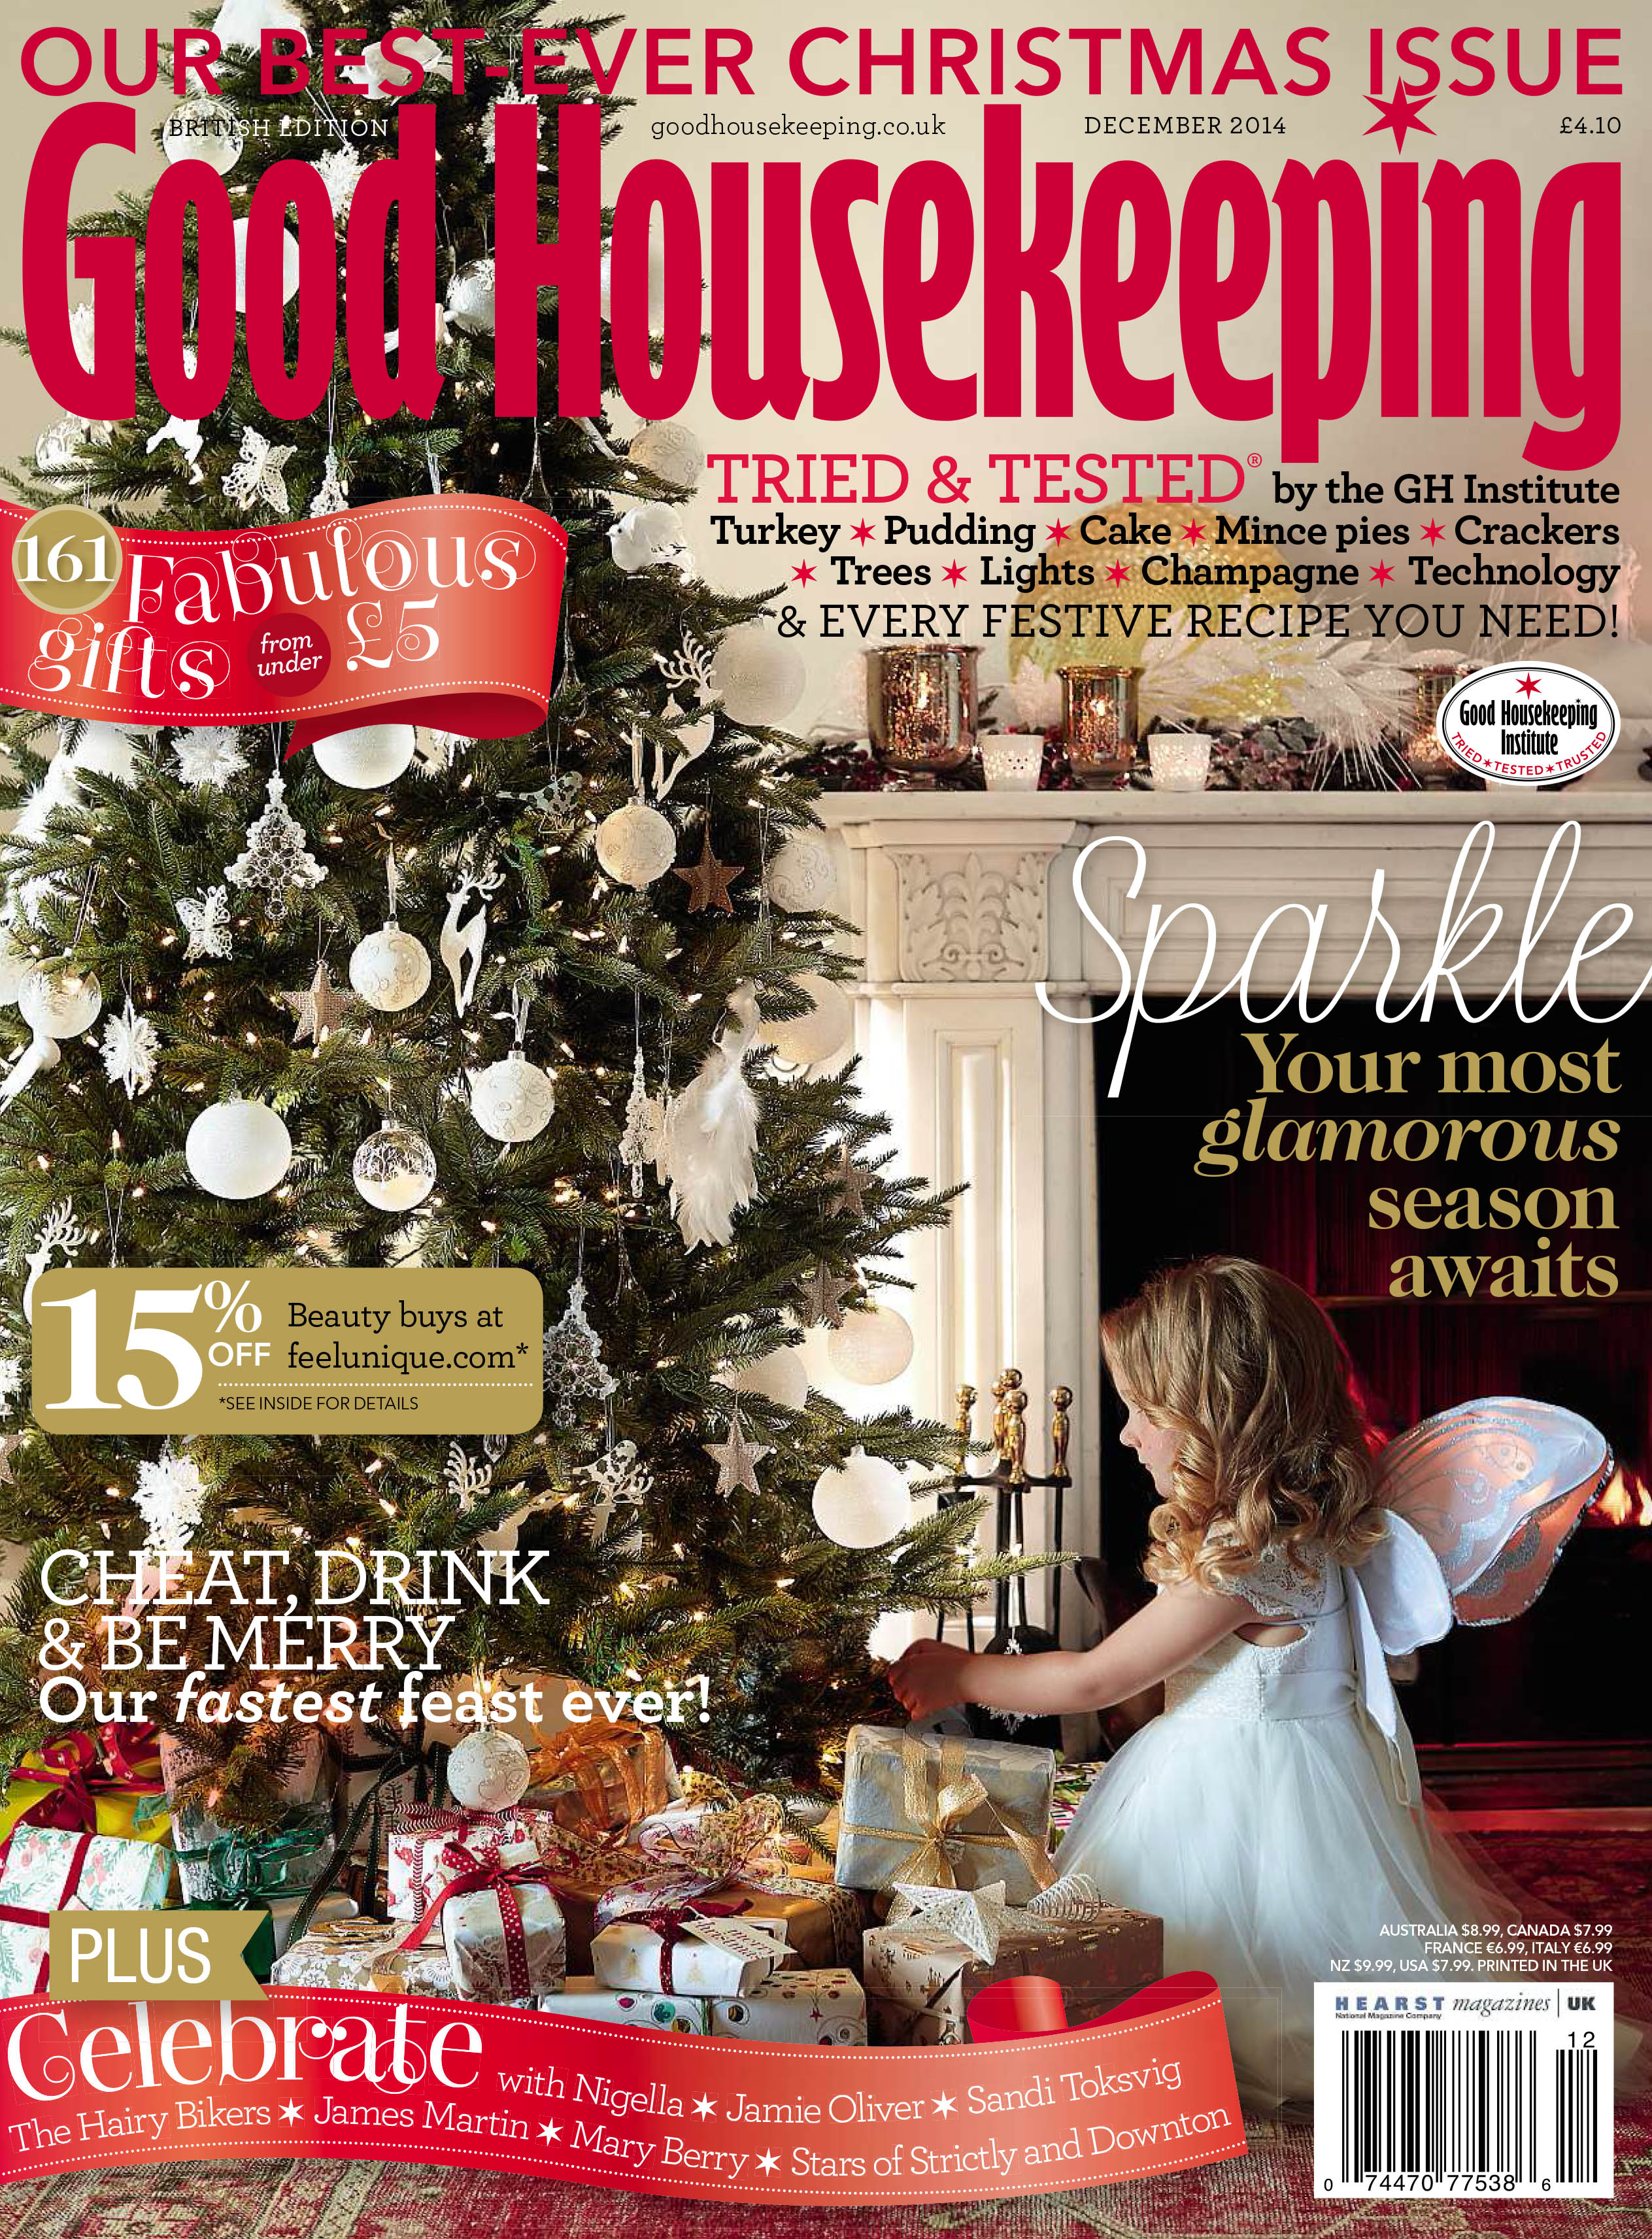 Good Housekeeping December 2014 Issue Is Out Now Good